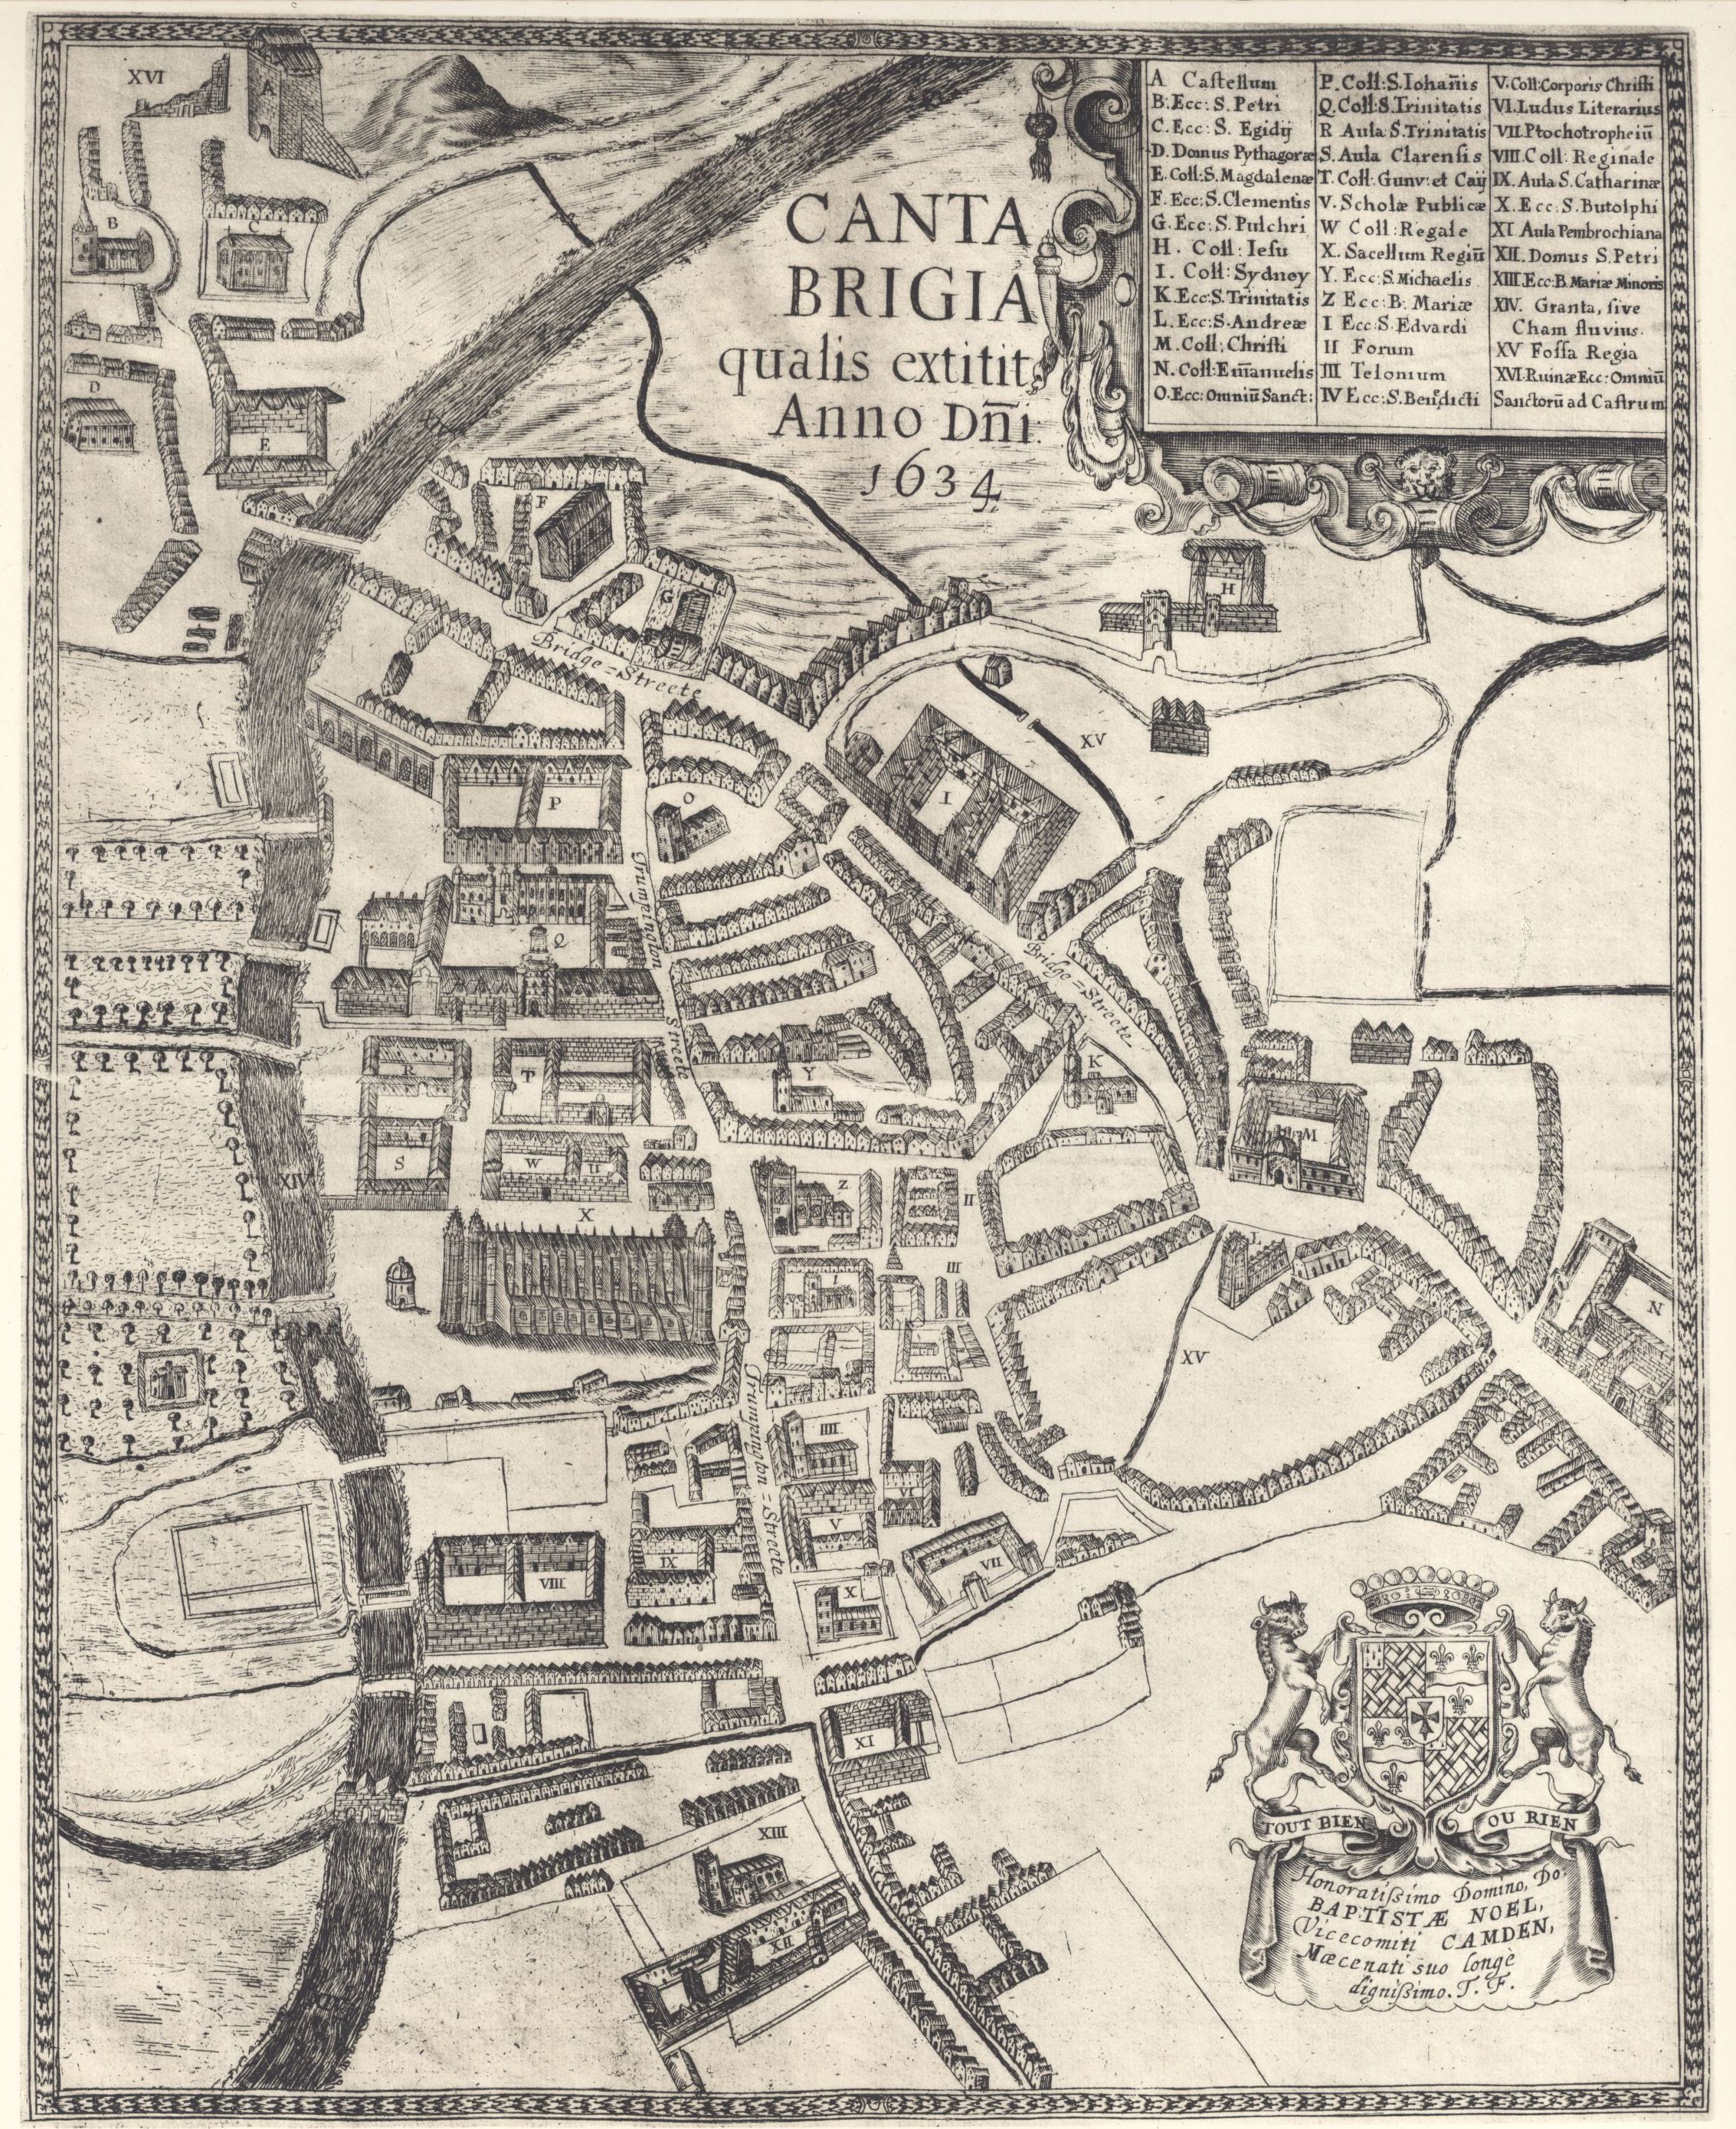 Plan of Cambridge, by Thomas Fuller, 1634, showing the current Chapel, the Old Court and other early College buildings. [Clark and Gray, plate 5]